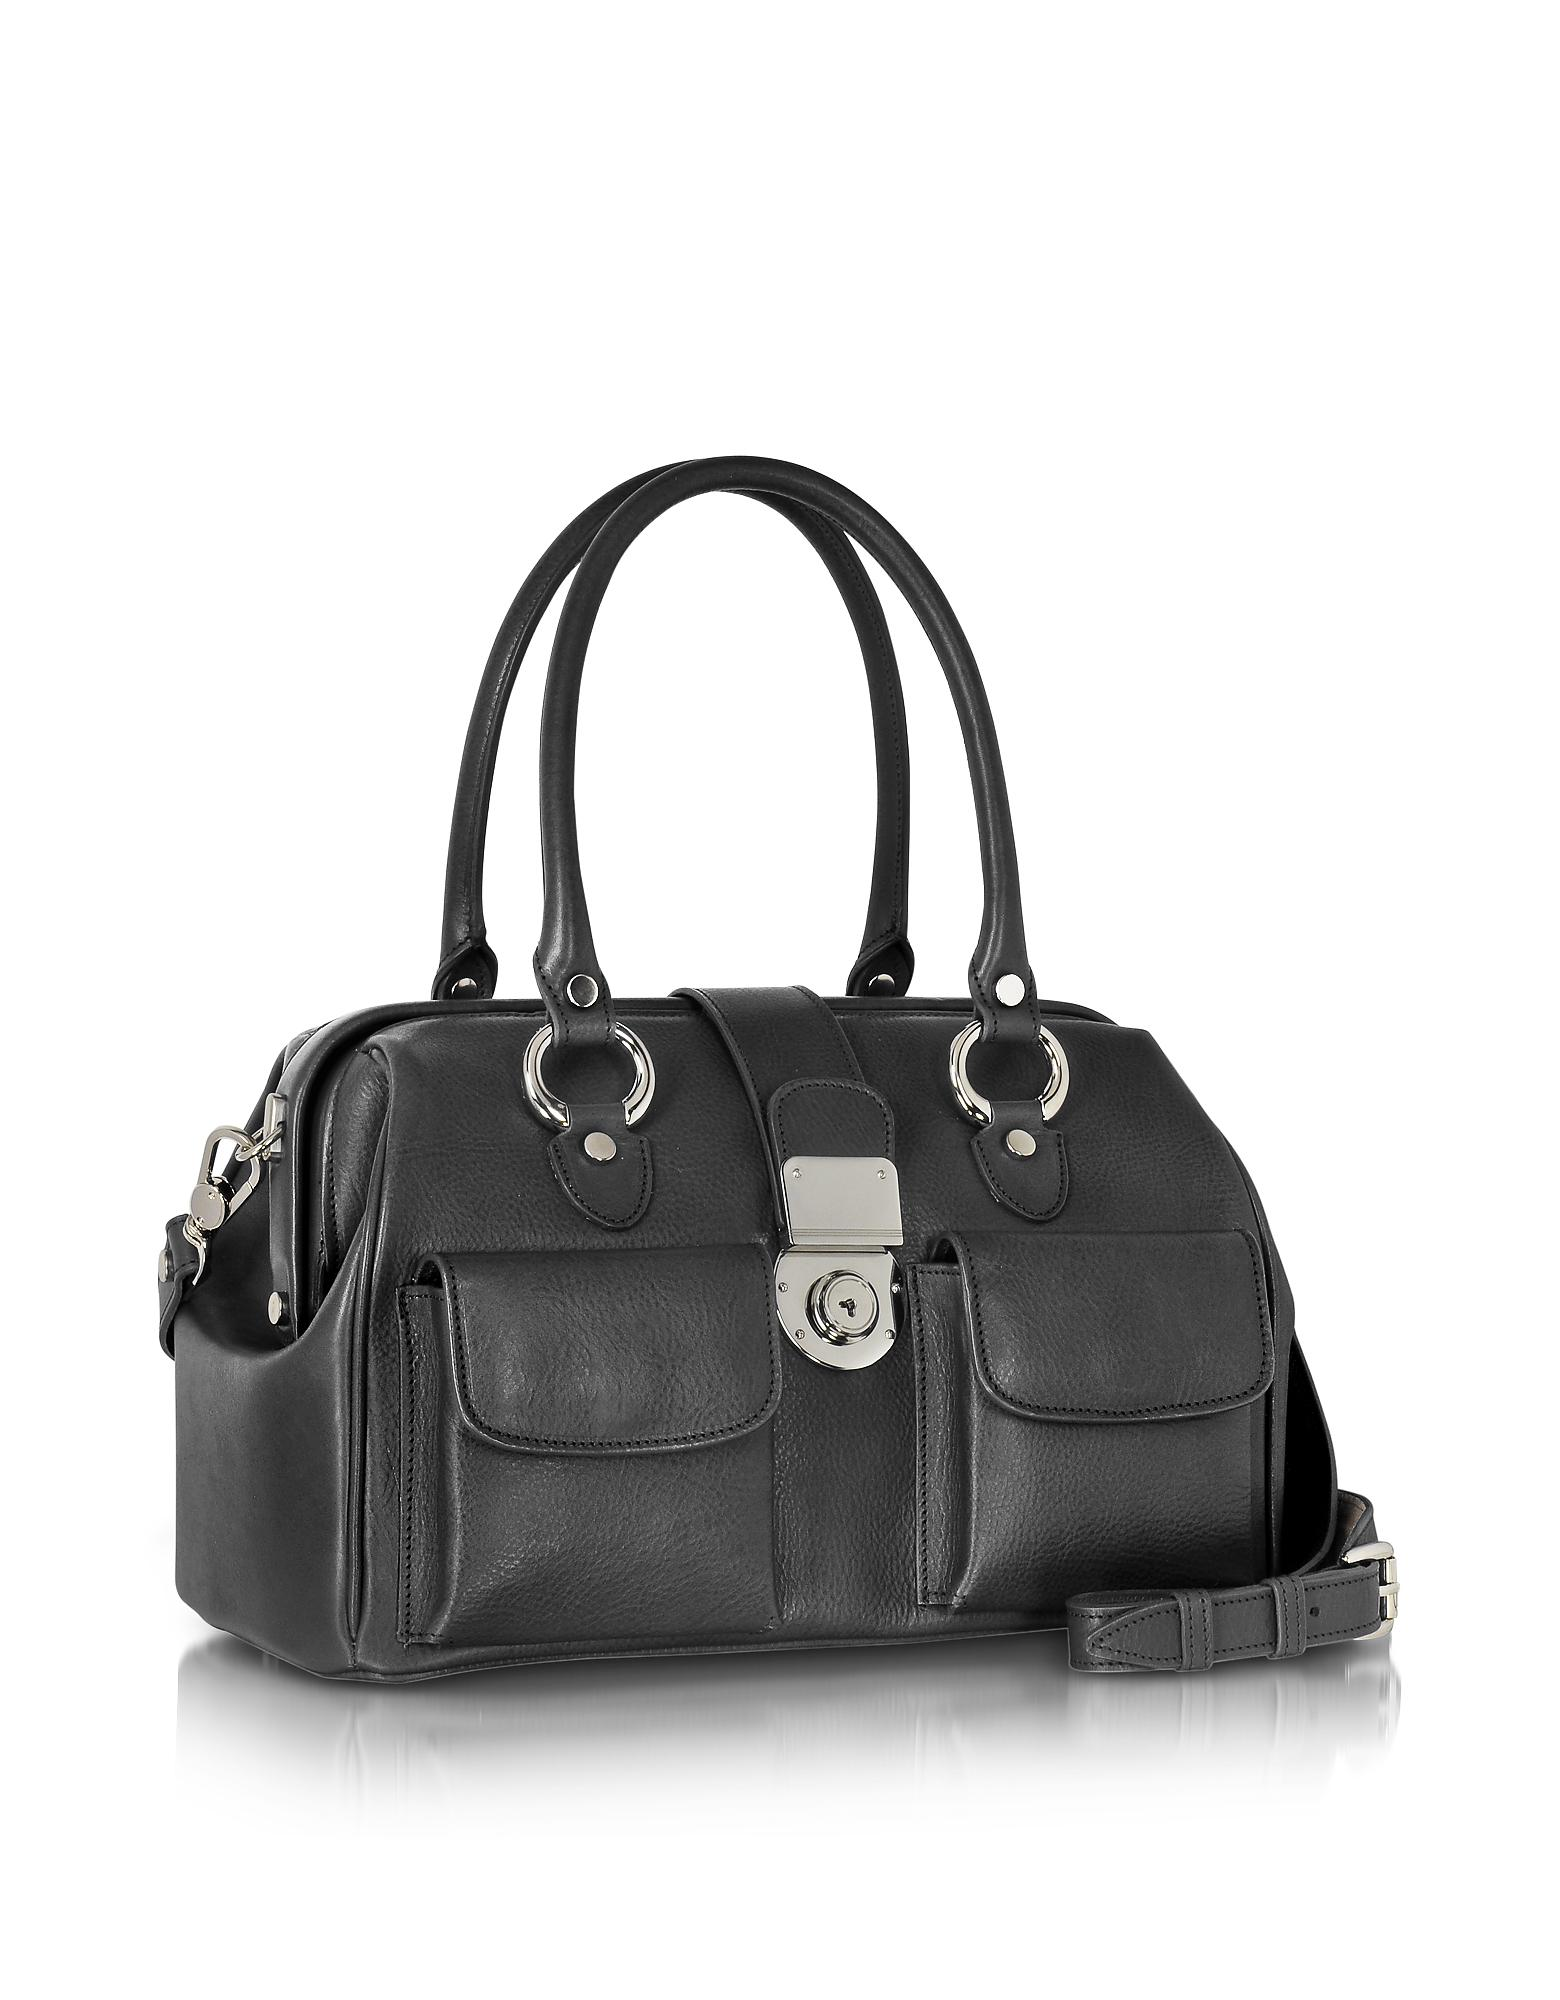 a6253bf9f408 L.A.P.A. Front Pocket Calf Leather Doctor-style Handbag in Black - Save  35.01483679525222% - Lyst